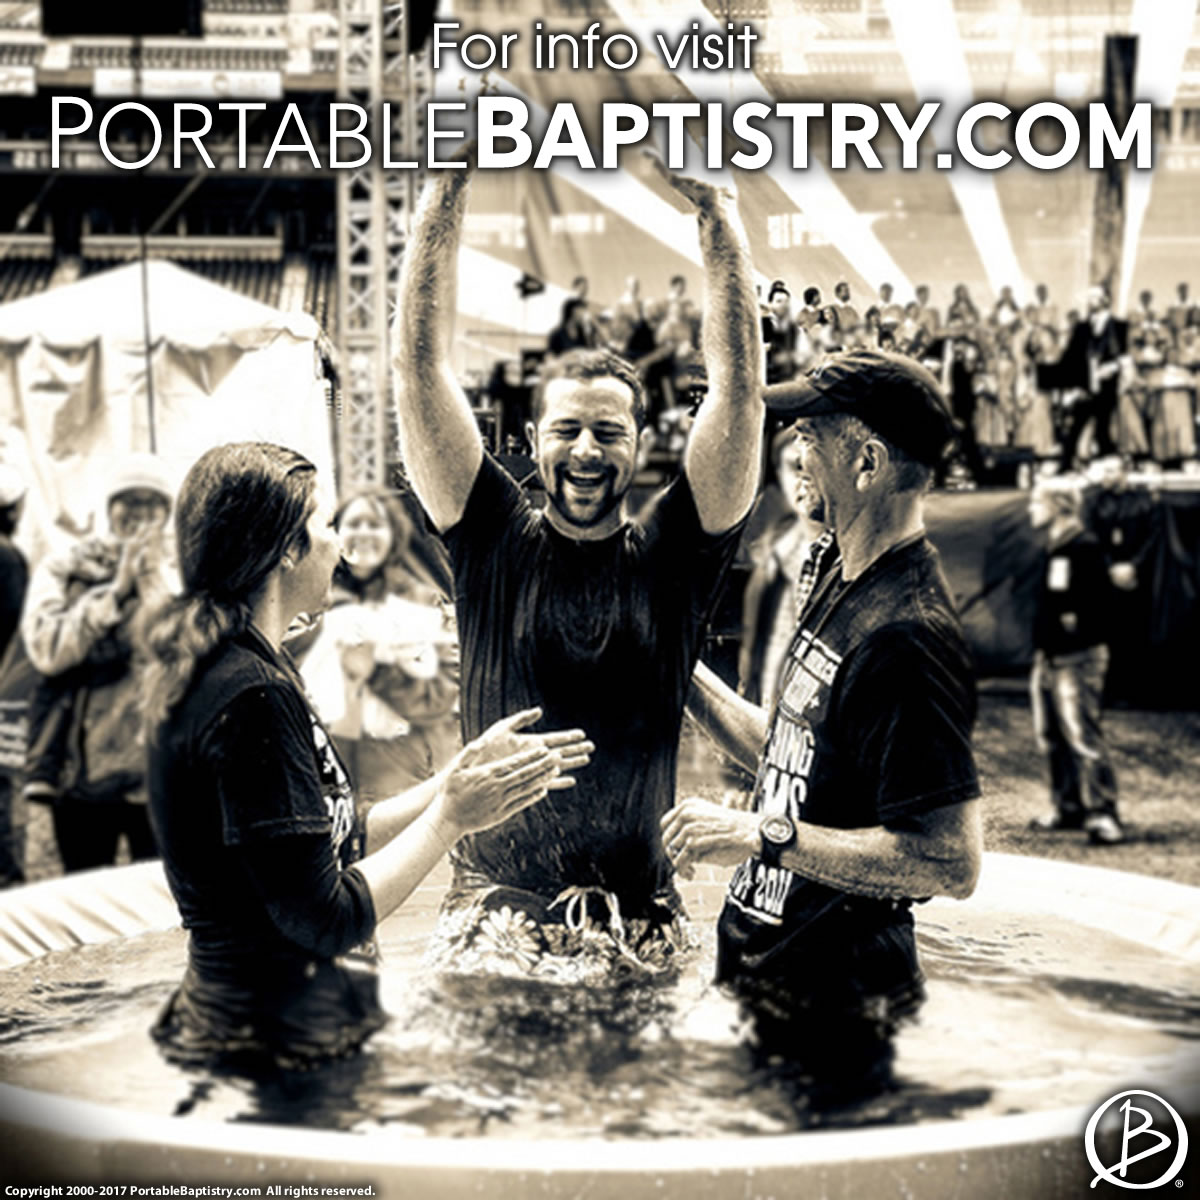 How to Order Baptistry